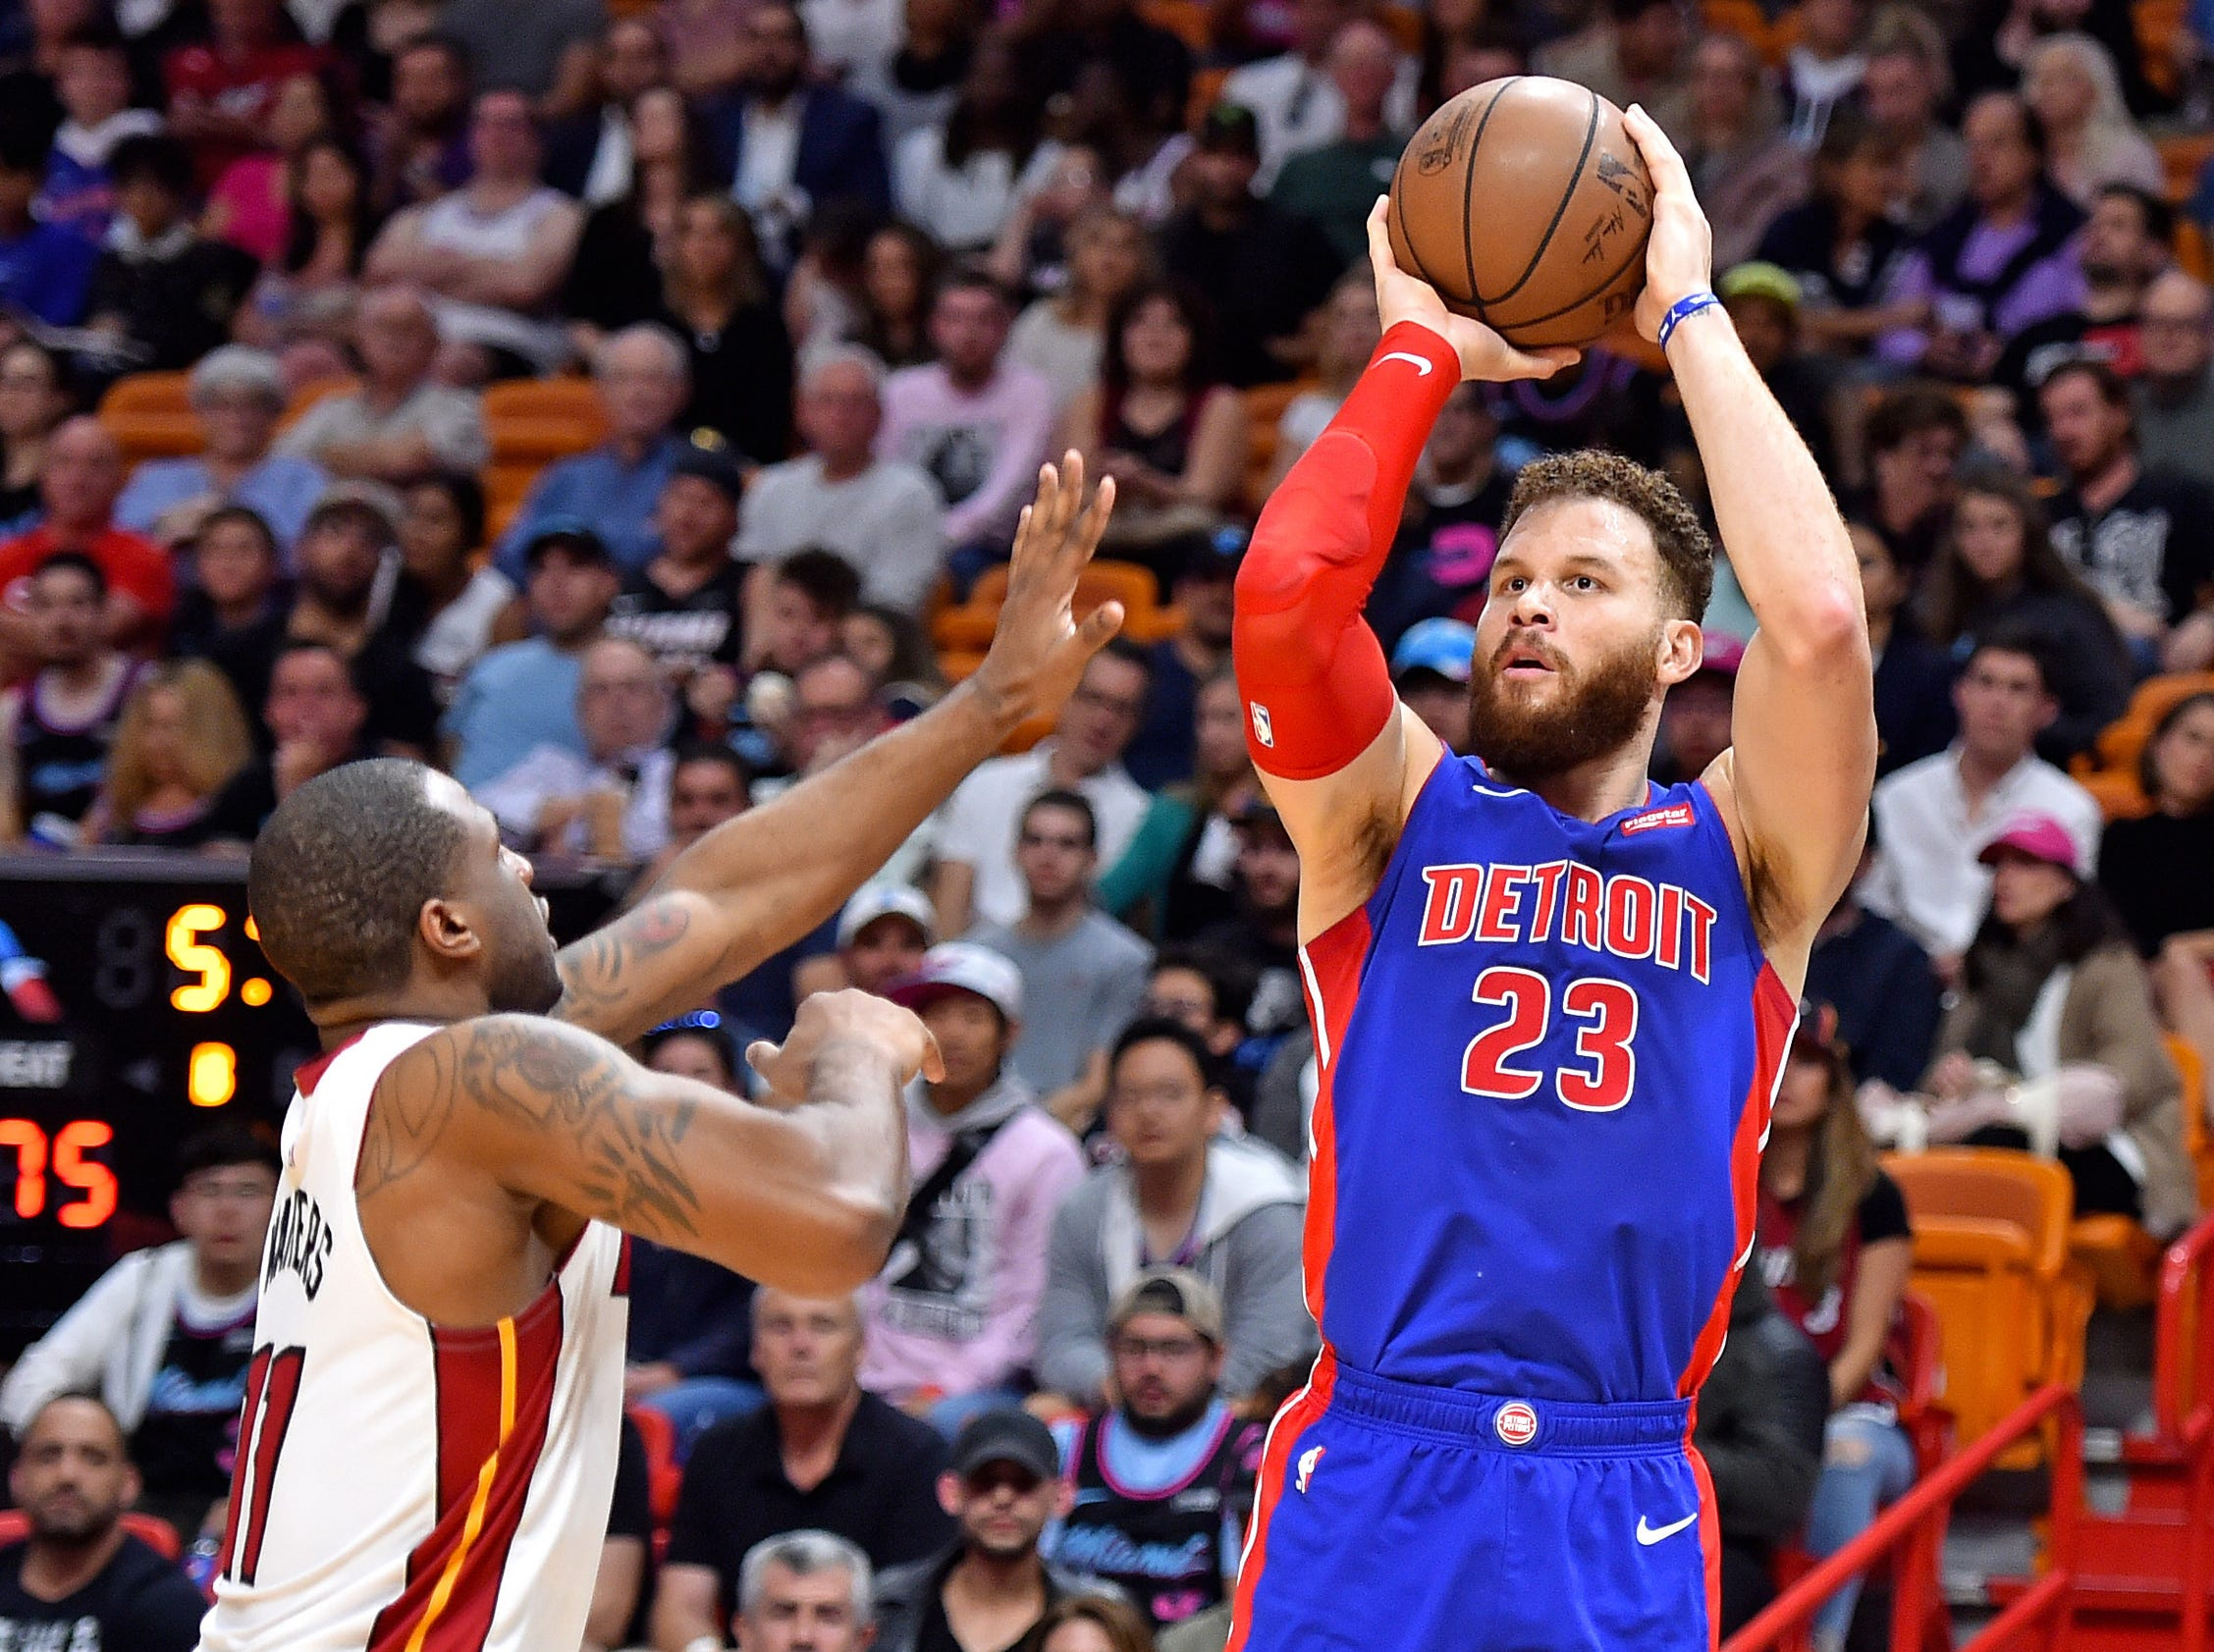 Detroit Pistons forward Blake Griffin (23) shoots over Miami Heat guard Dion Waiters (11) during the second half at American Airlines Arena on Wednesday, March 13, 2019.